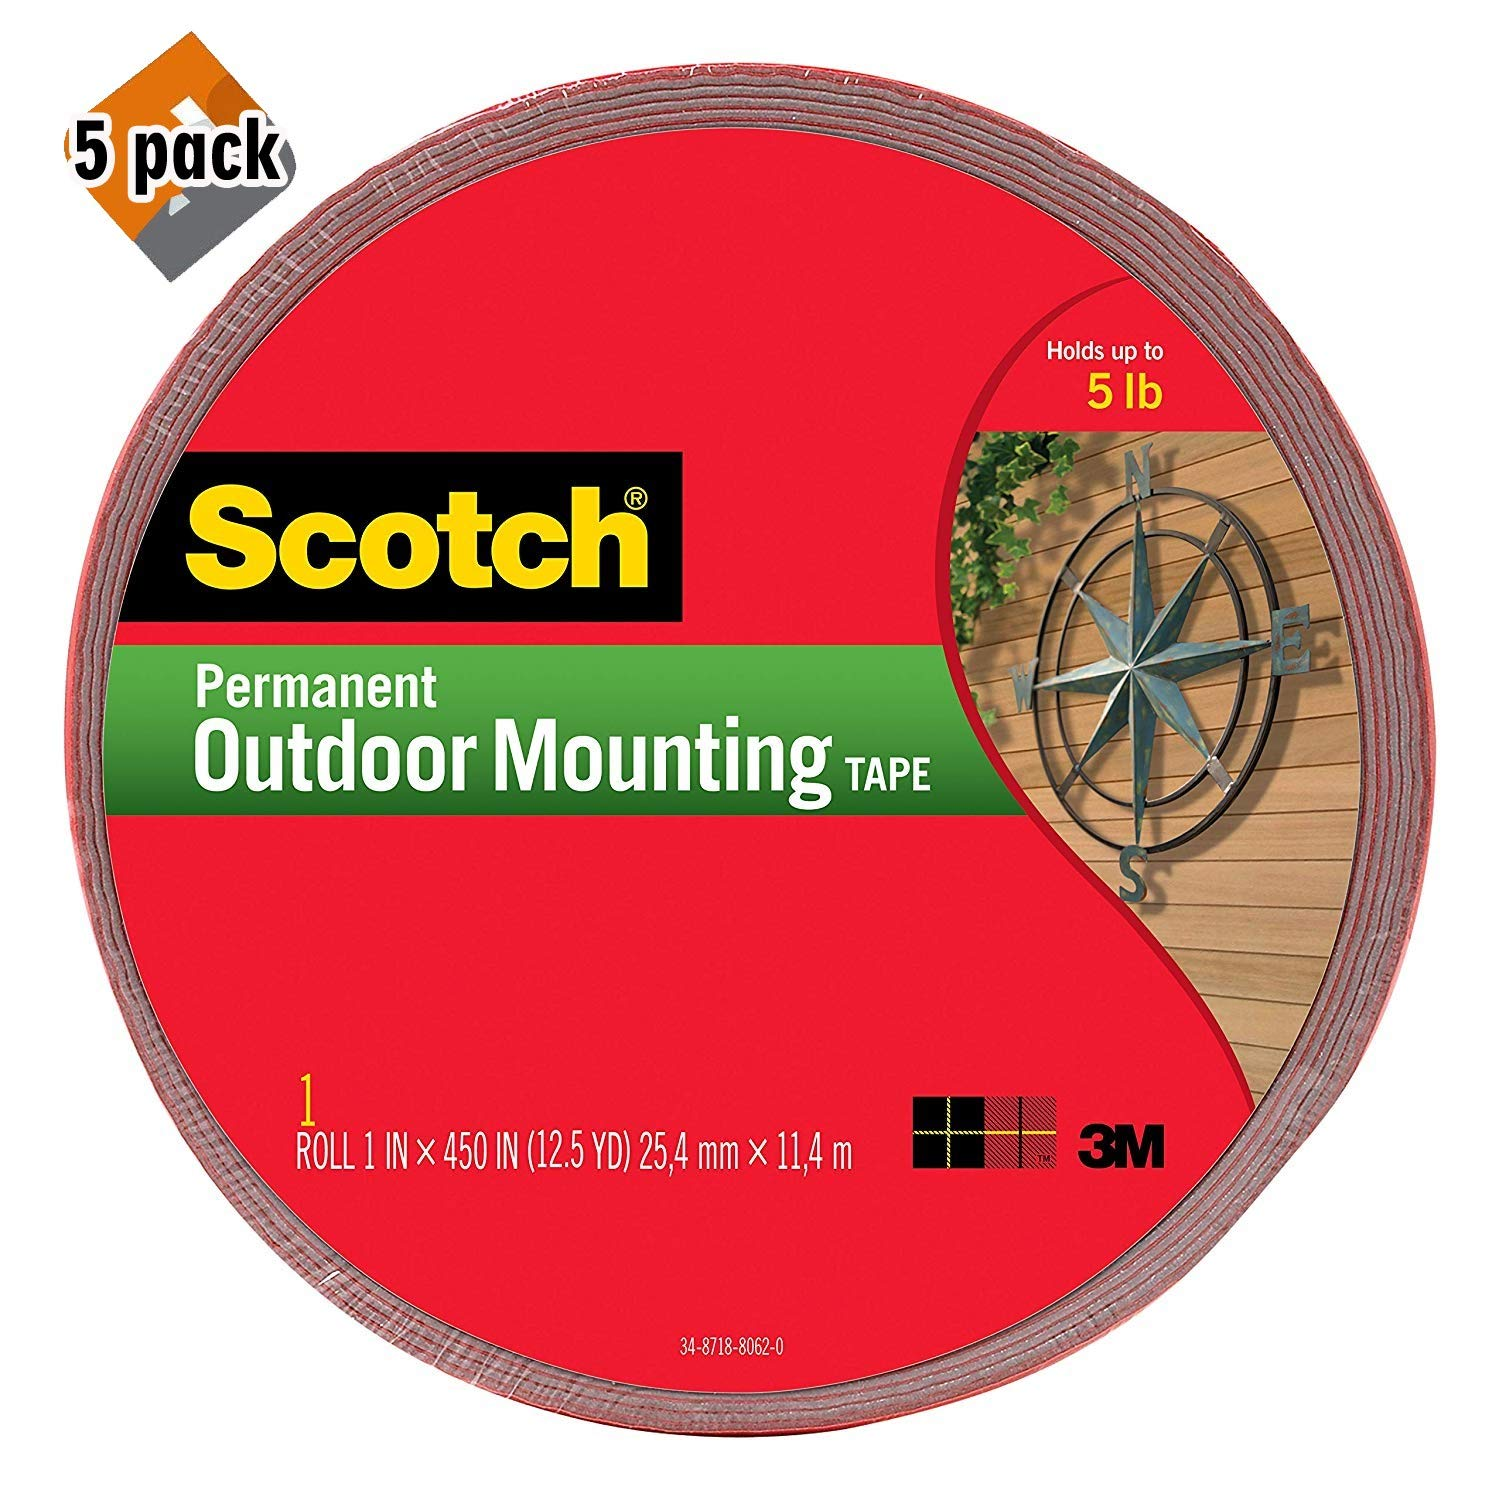 Scotch Permanent Outdoor Mounting Tape, 1 Inch x 450 Inches (4011-LONG) 5 Pack by Scotch Brand